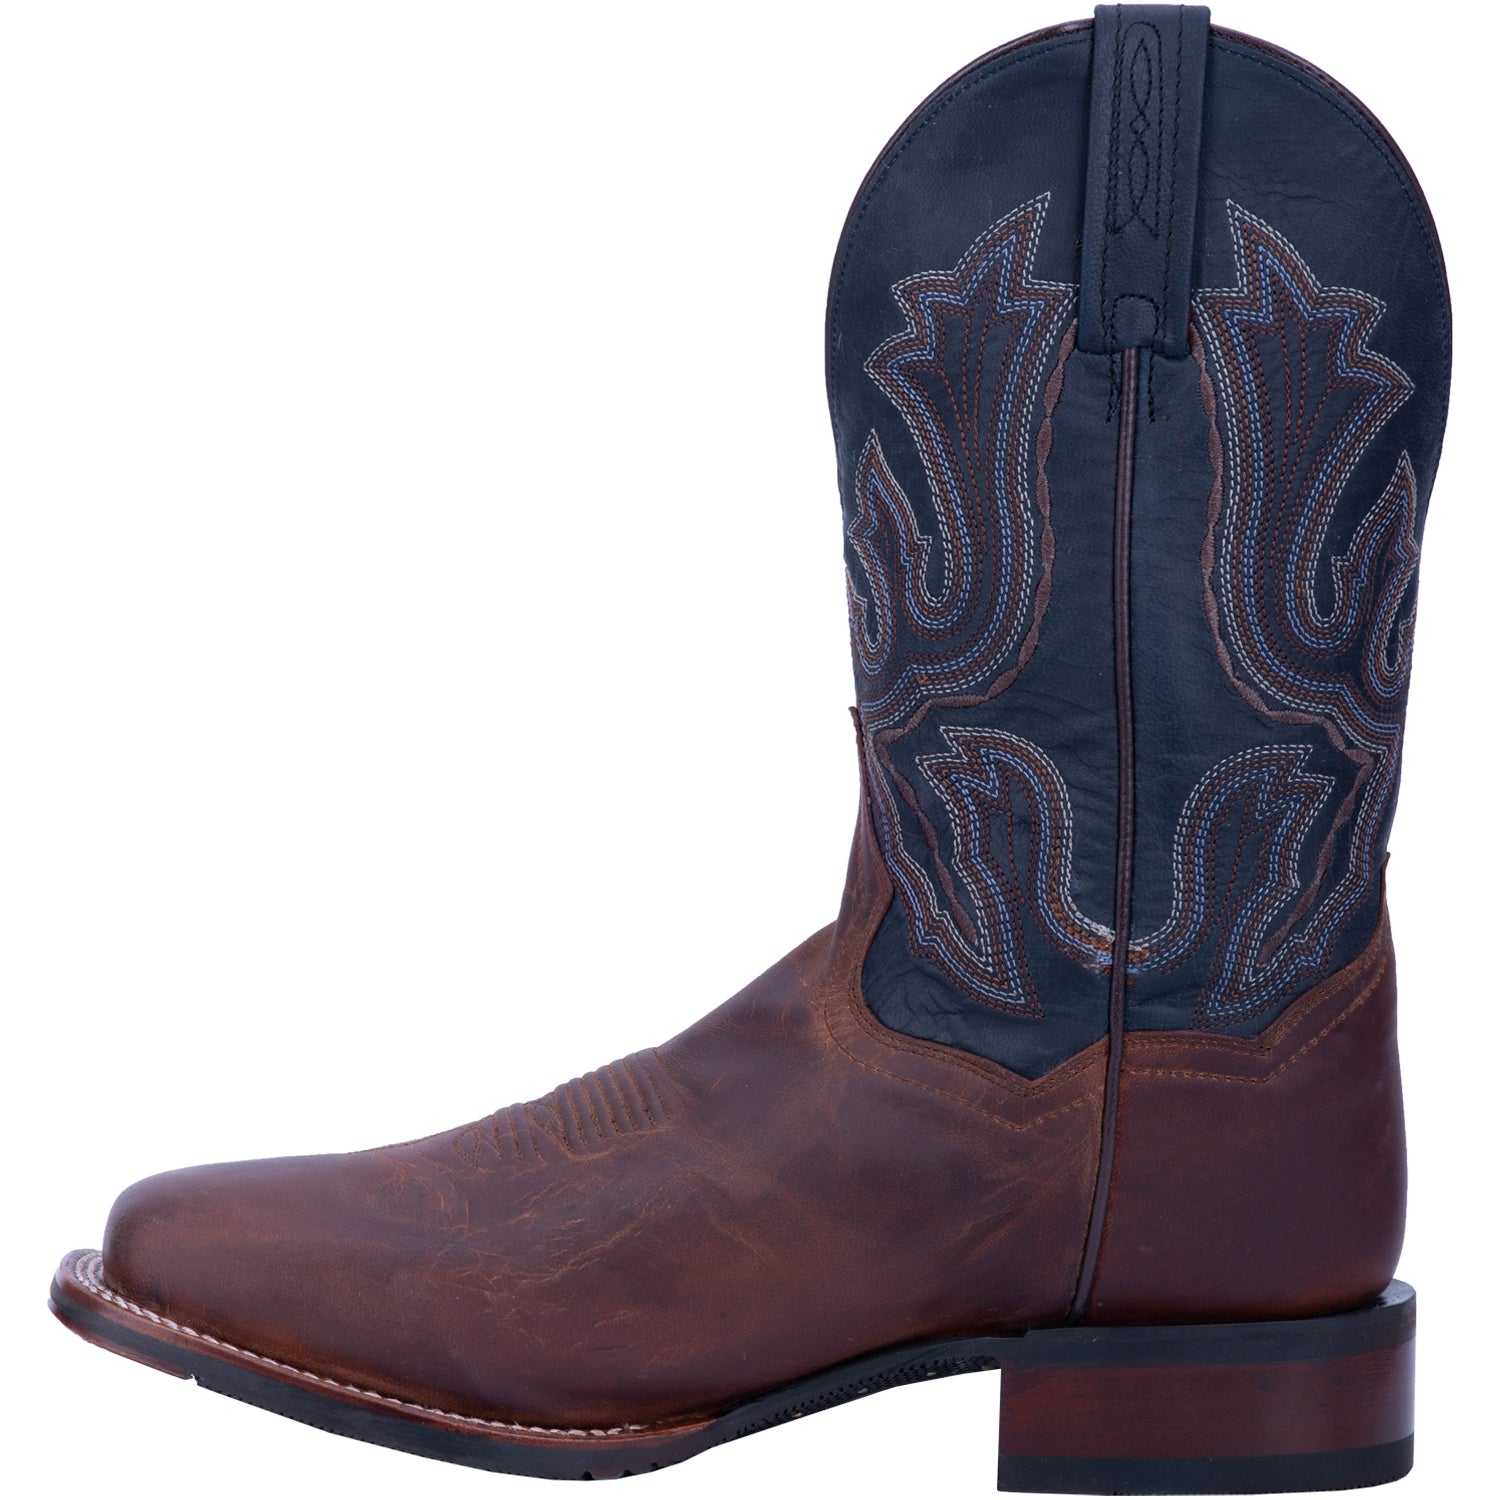 WINSLOW LEATHER BOOT - Dan Post Boots